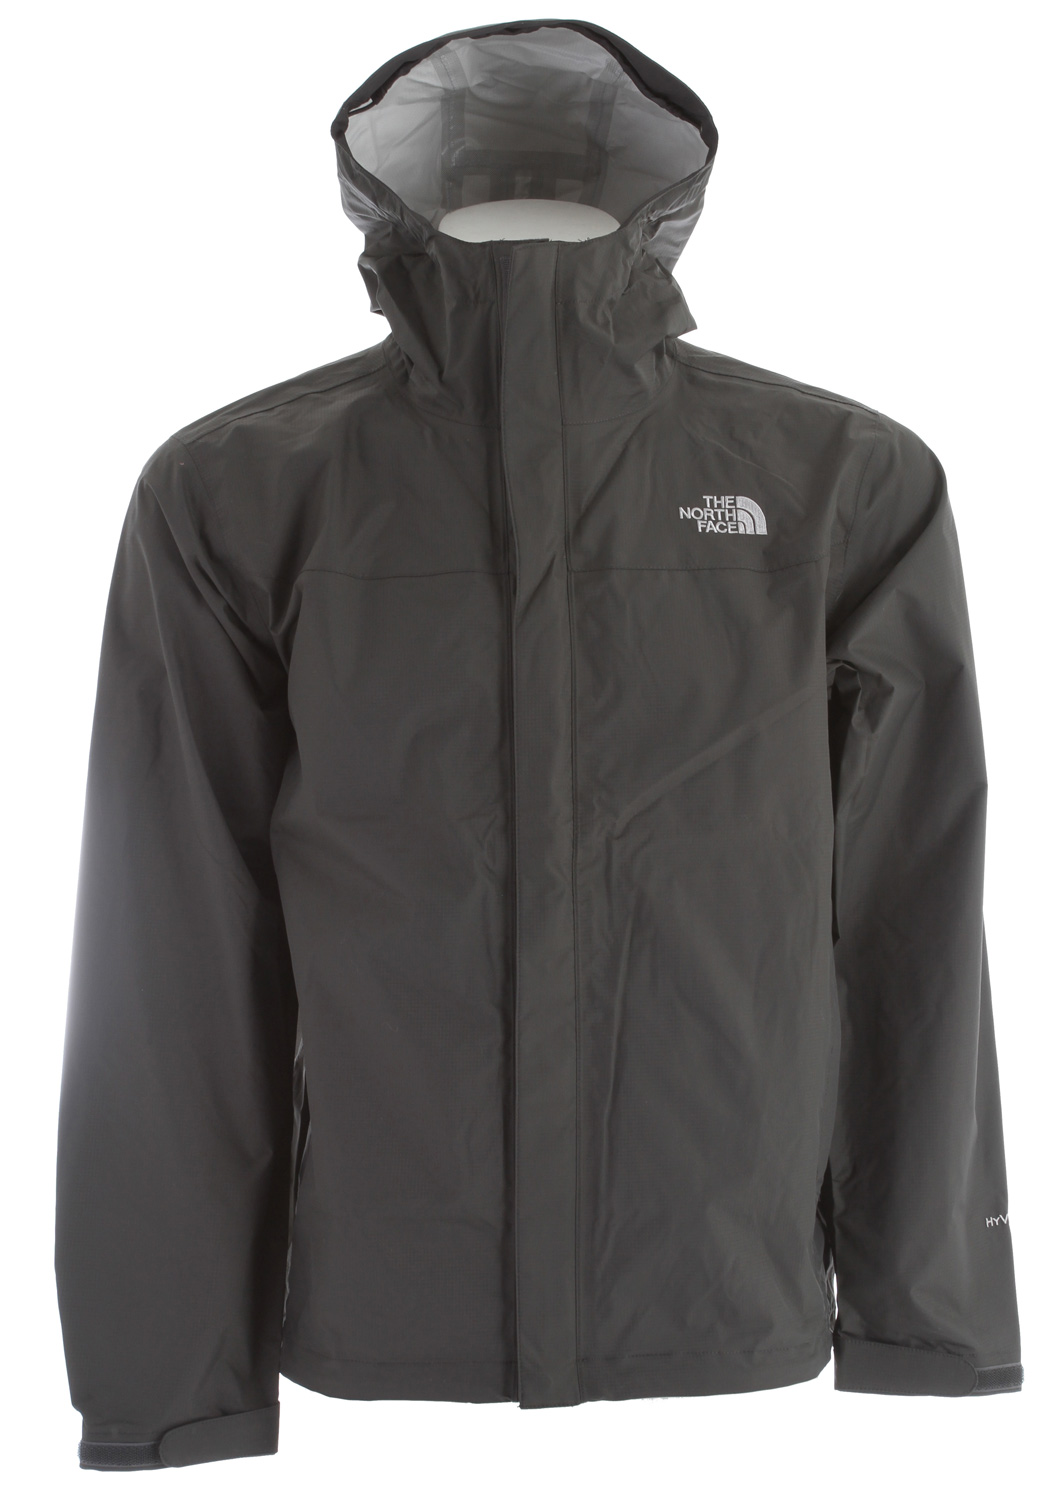 Classic, year-round rainwear, now constructed with HyVent 2.5L EC fabric, an eco-conscious material; our most popular waterproof, breathable jacket. Key Features of The North Face Venture Jacket: Standard fit Waterproof, breathable, seam sealed Attached, fully adjustable hood with hidden drawcord system Center front zip and Velcro® closure Brushed chin guard lining Pit-zips Two hand pockets Stowable in hand pocket Self fabric adjustable Velcro® cuff tabs Hem cinch-cord / fabric: 40D 85 g/m (2.5 oz/yd ) 100% nylon ripstop HyVent 2.5L EC (50% non-petroleum membrane) - $68.95